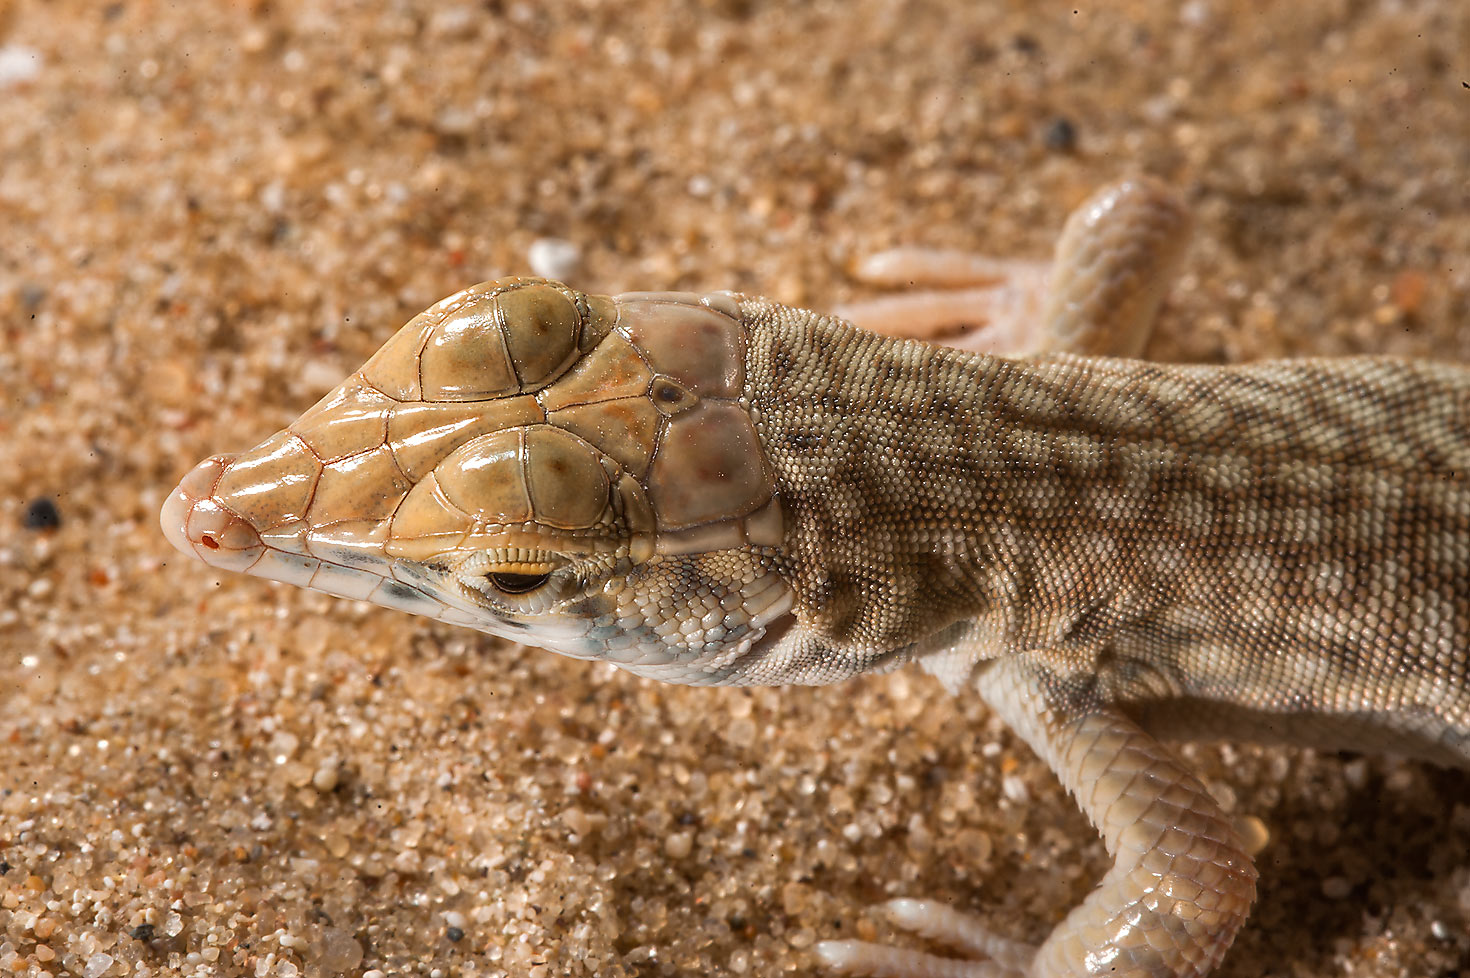 Close up of Schmidt's fringed-toed lizard...area of Rawdat Ekdaim. Southern Qatar